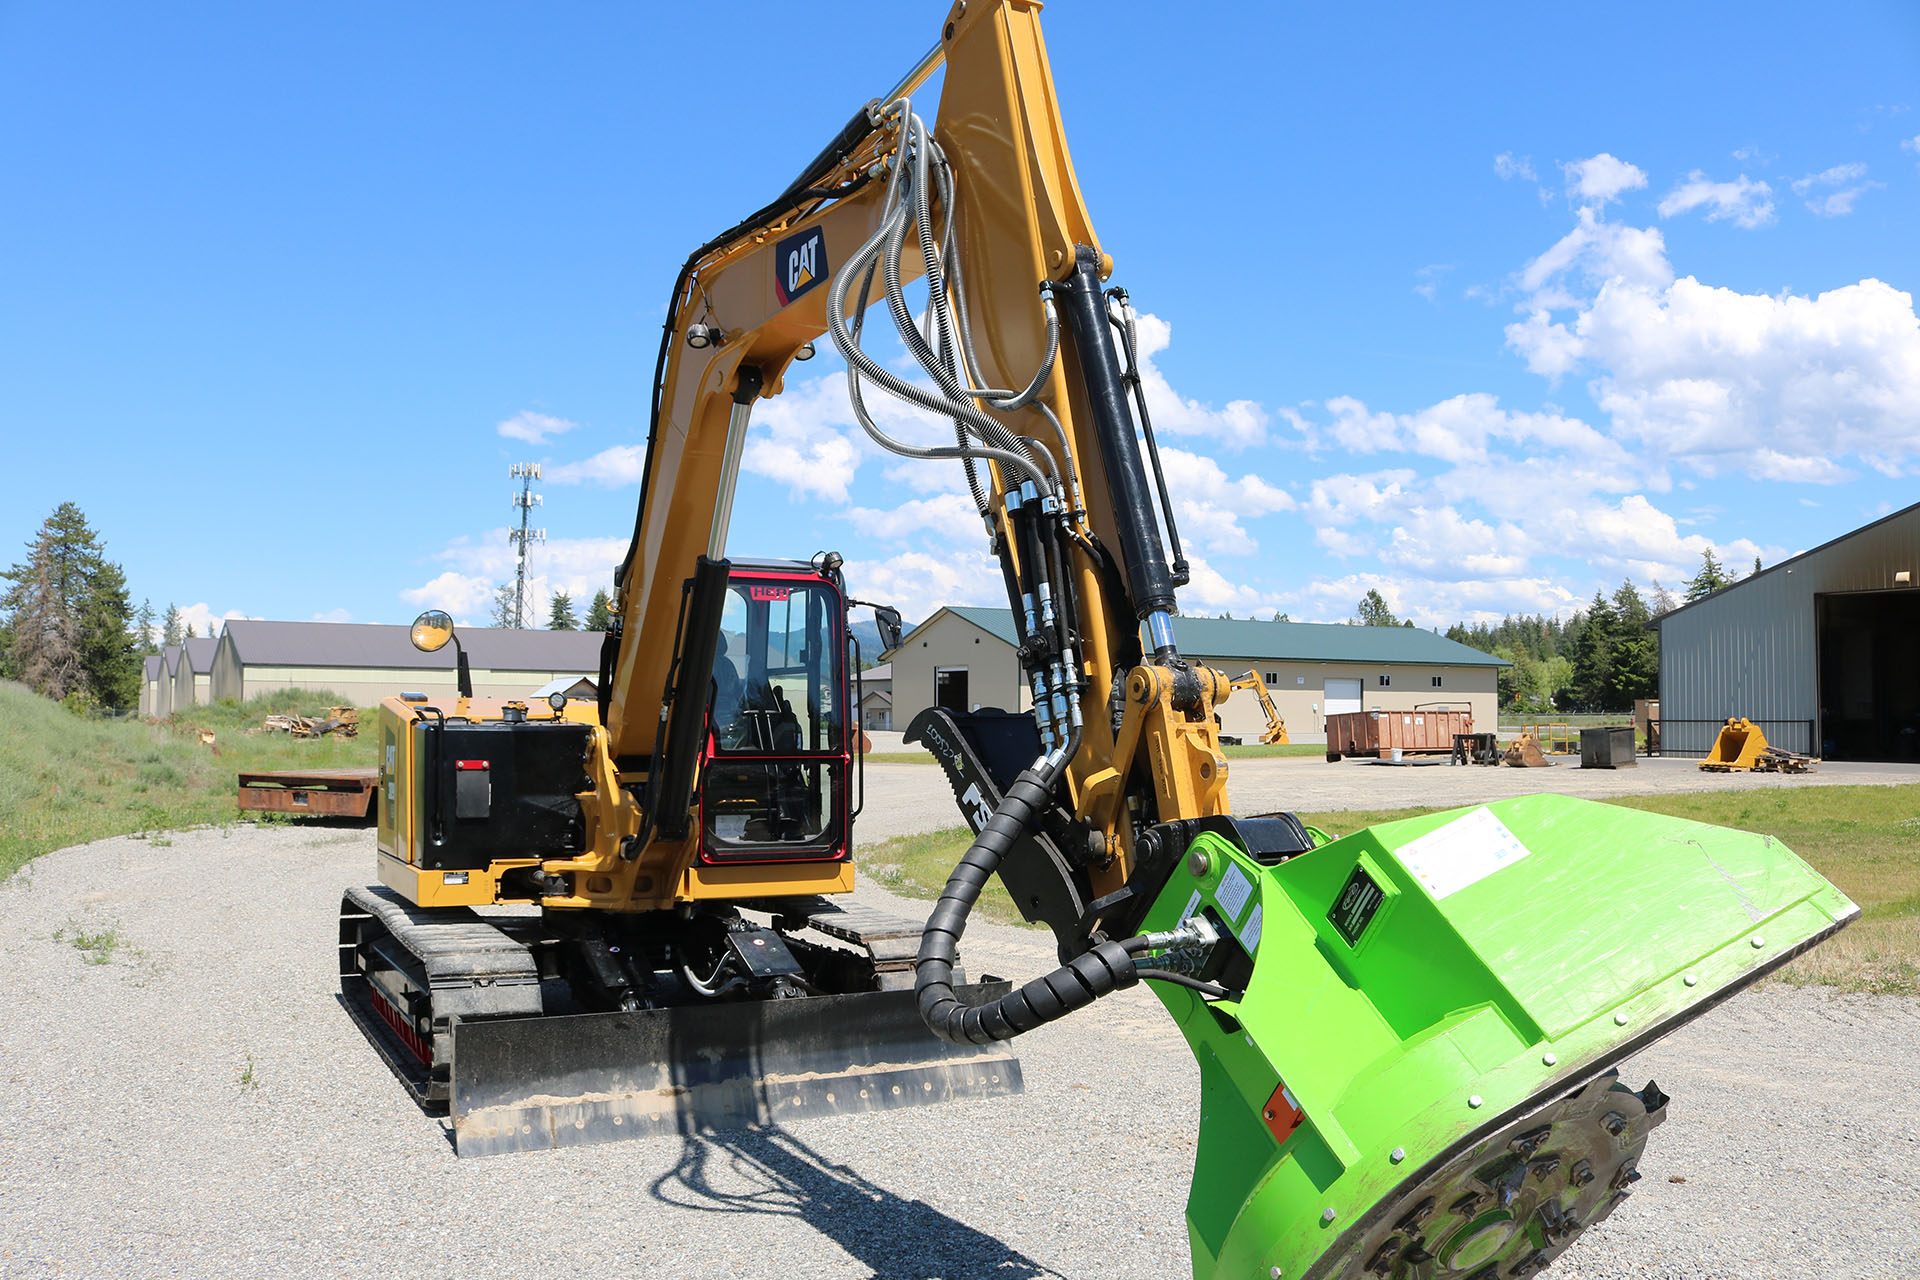 CAT 309 with Custom Guarding